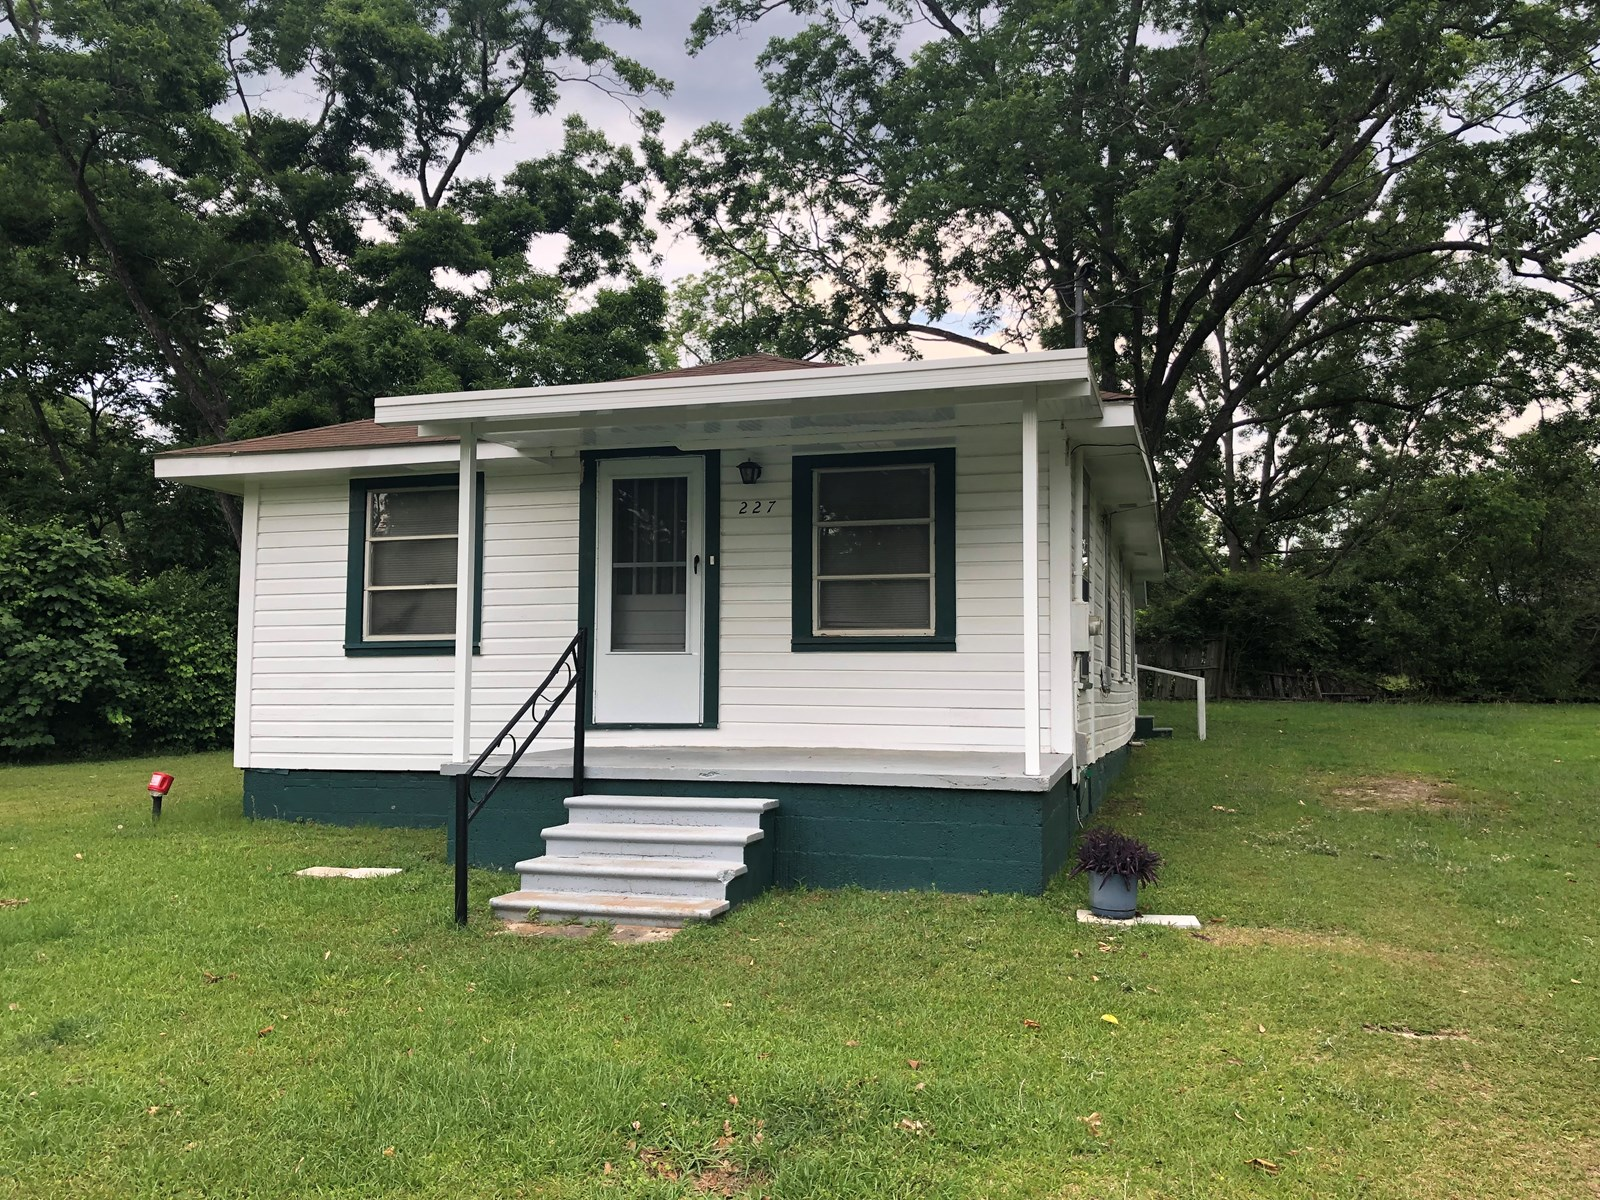 2B/1B SMALL OLDER HOME IN SLOCOMB, ALABAMA